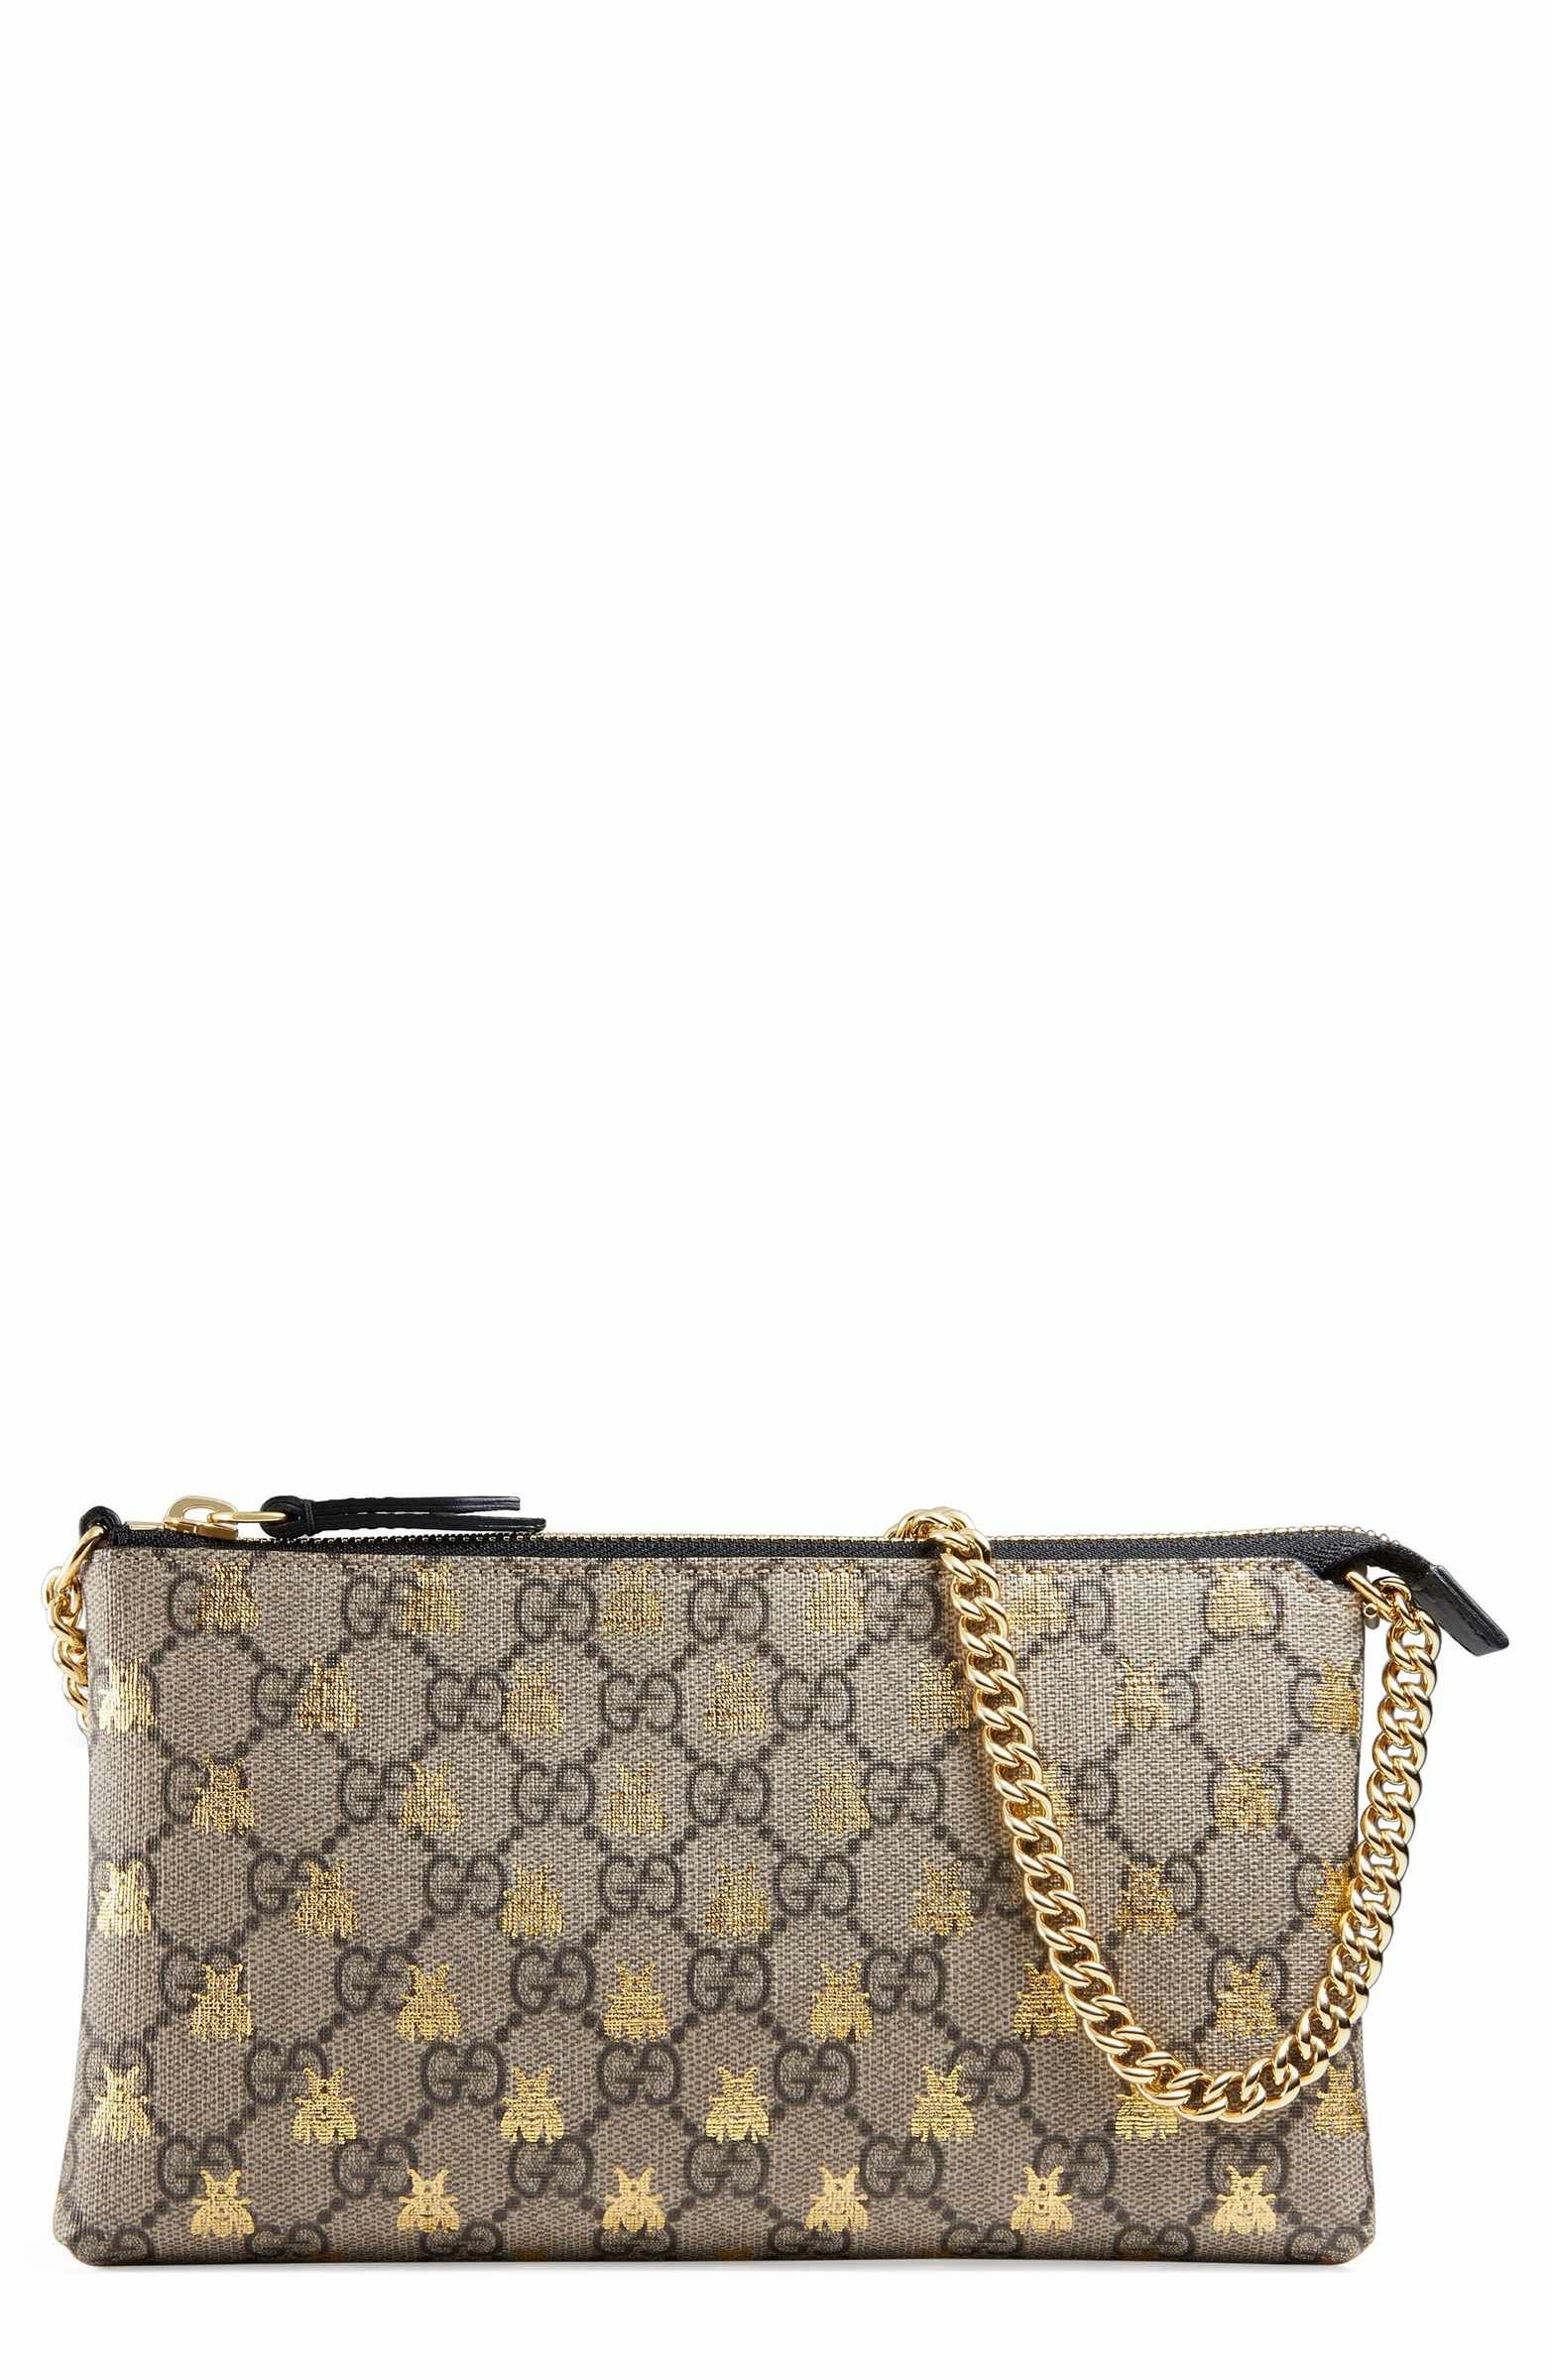 2021ac36f1c1 Main Image - Gucci Linea Bee GG Supreme Wrist Wallet | Bags & Purses ...